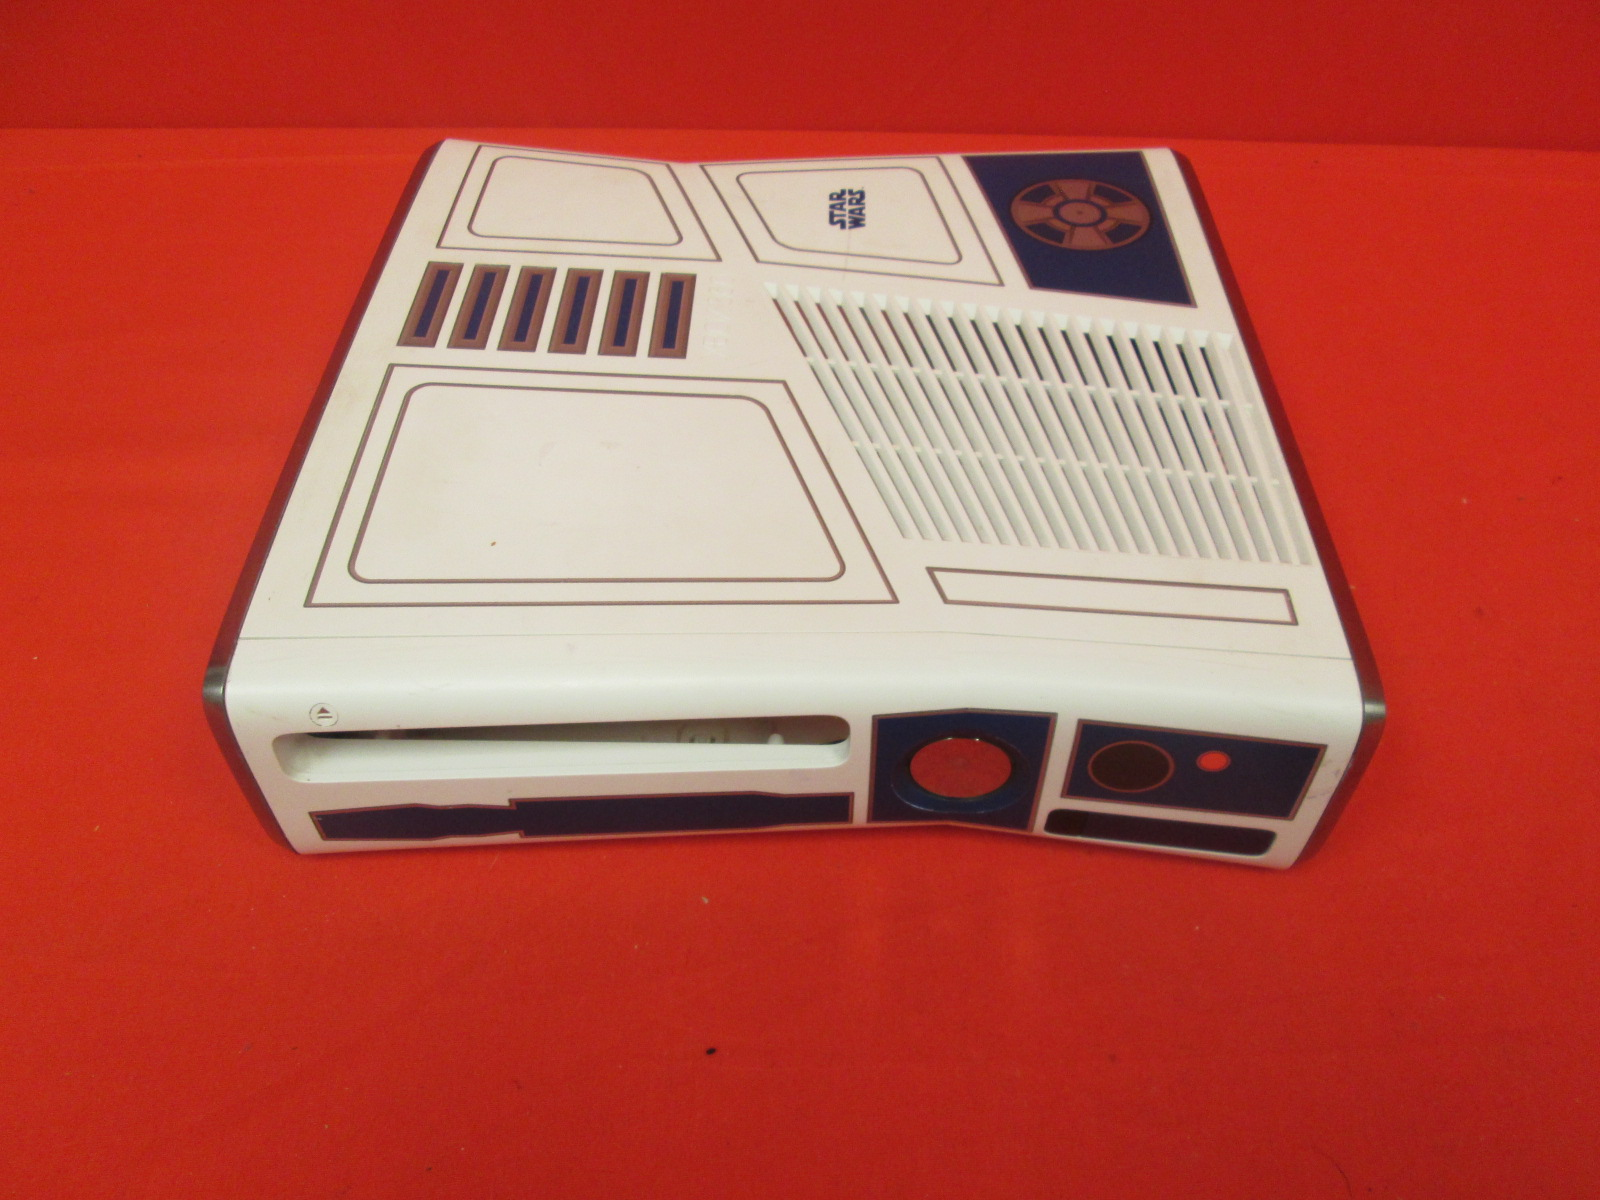 Replacement R2D2 Case Only White/Blue For Xbox 360 Video Game System